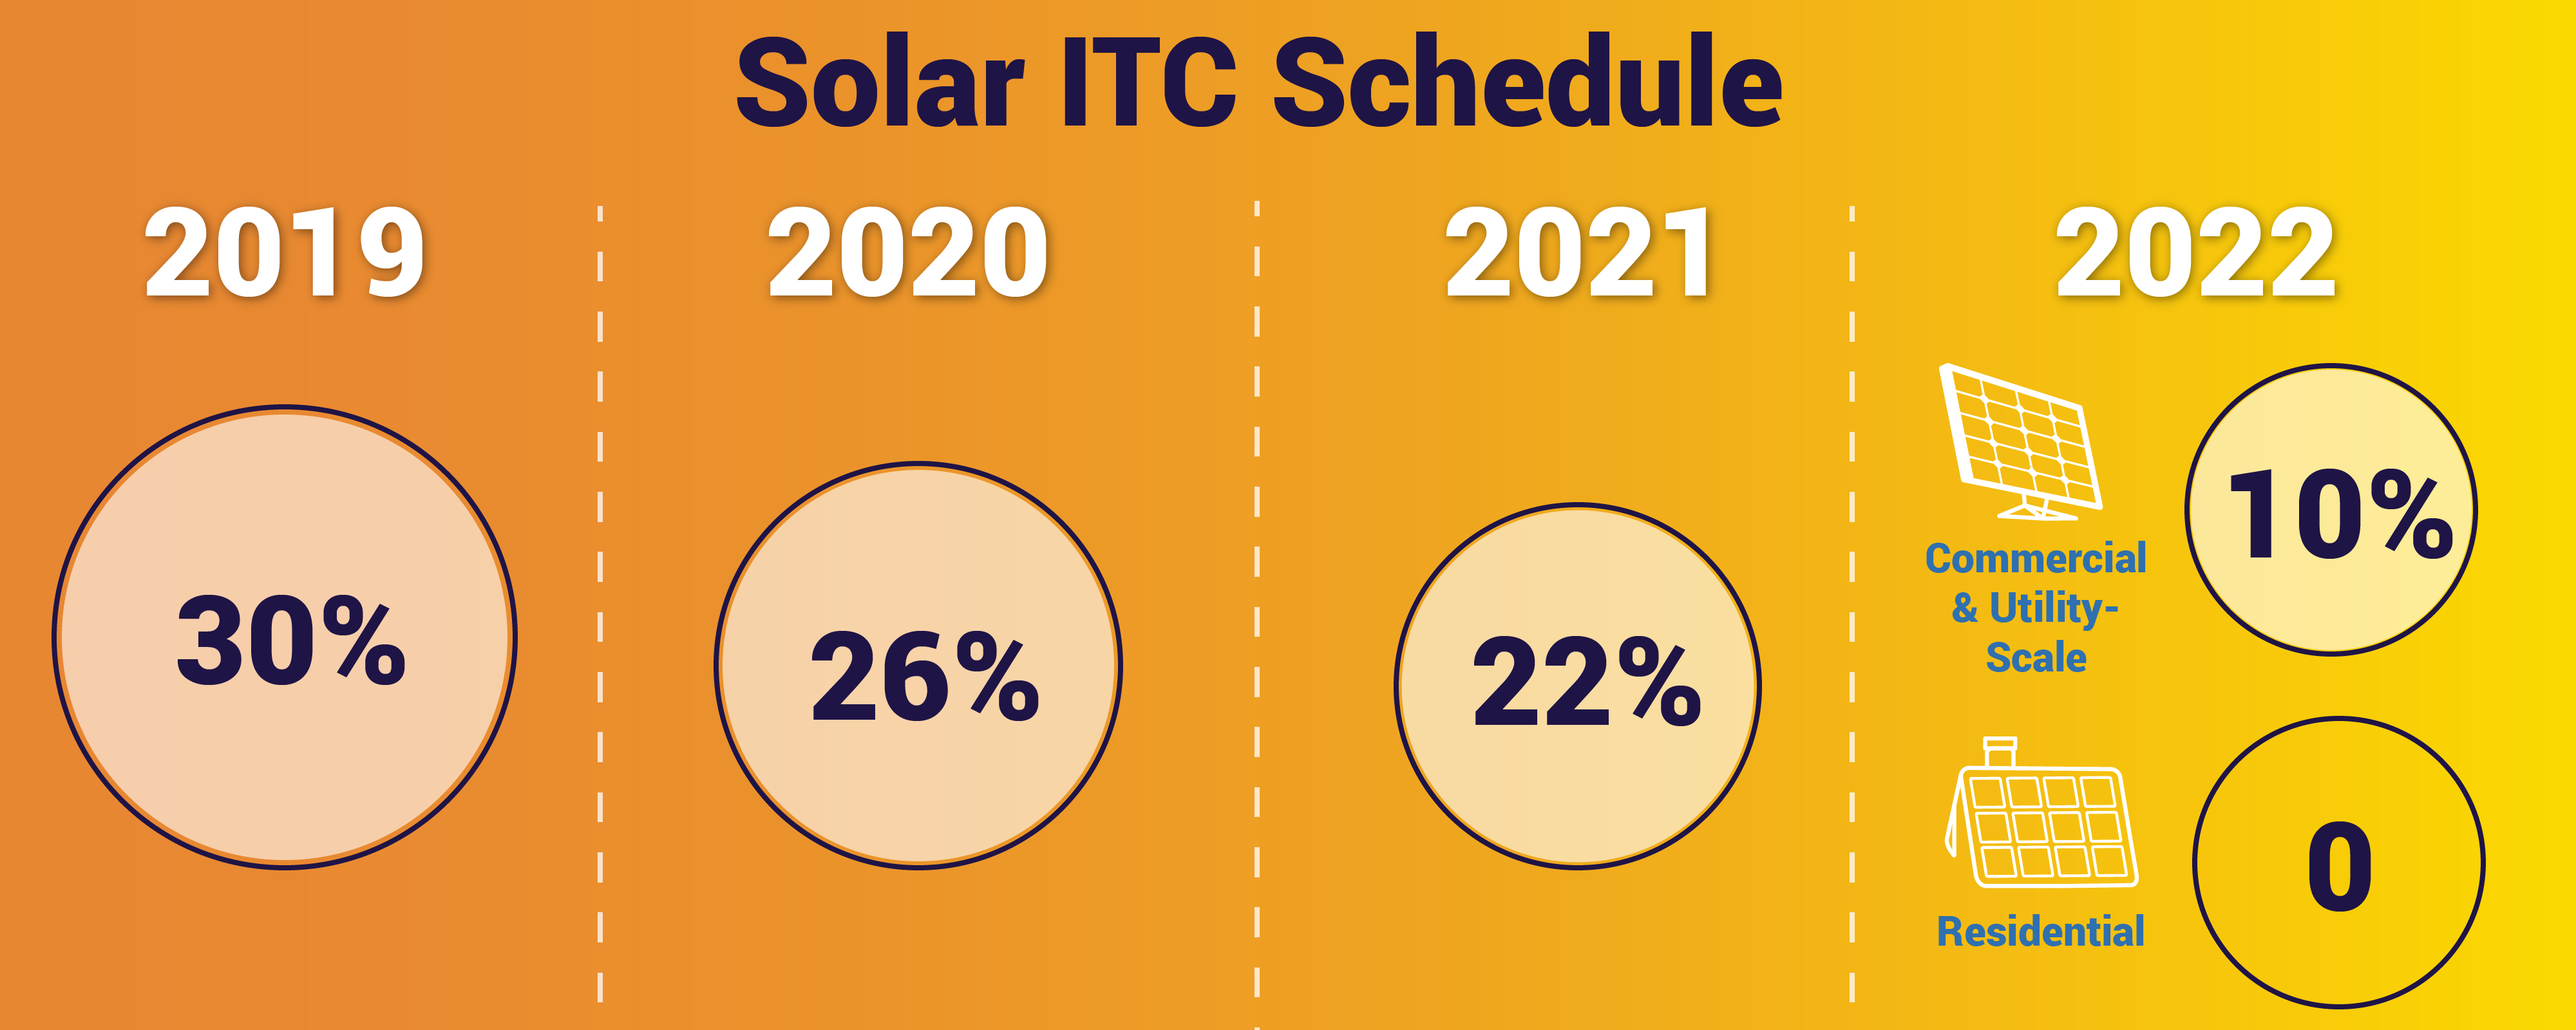 Solar Investment Tax Credit (ITC) | SEIA